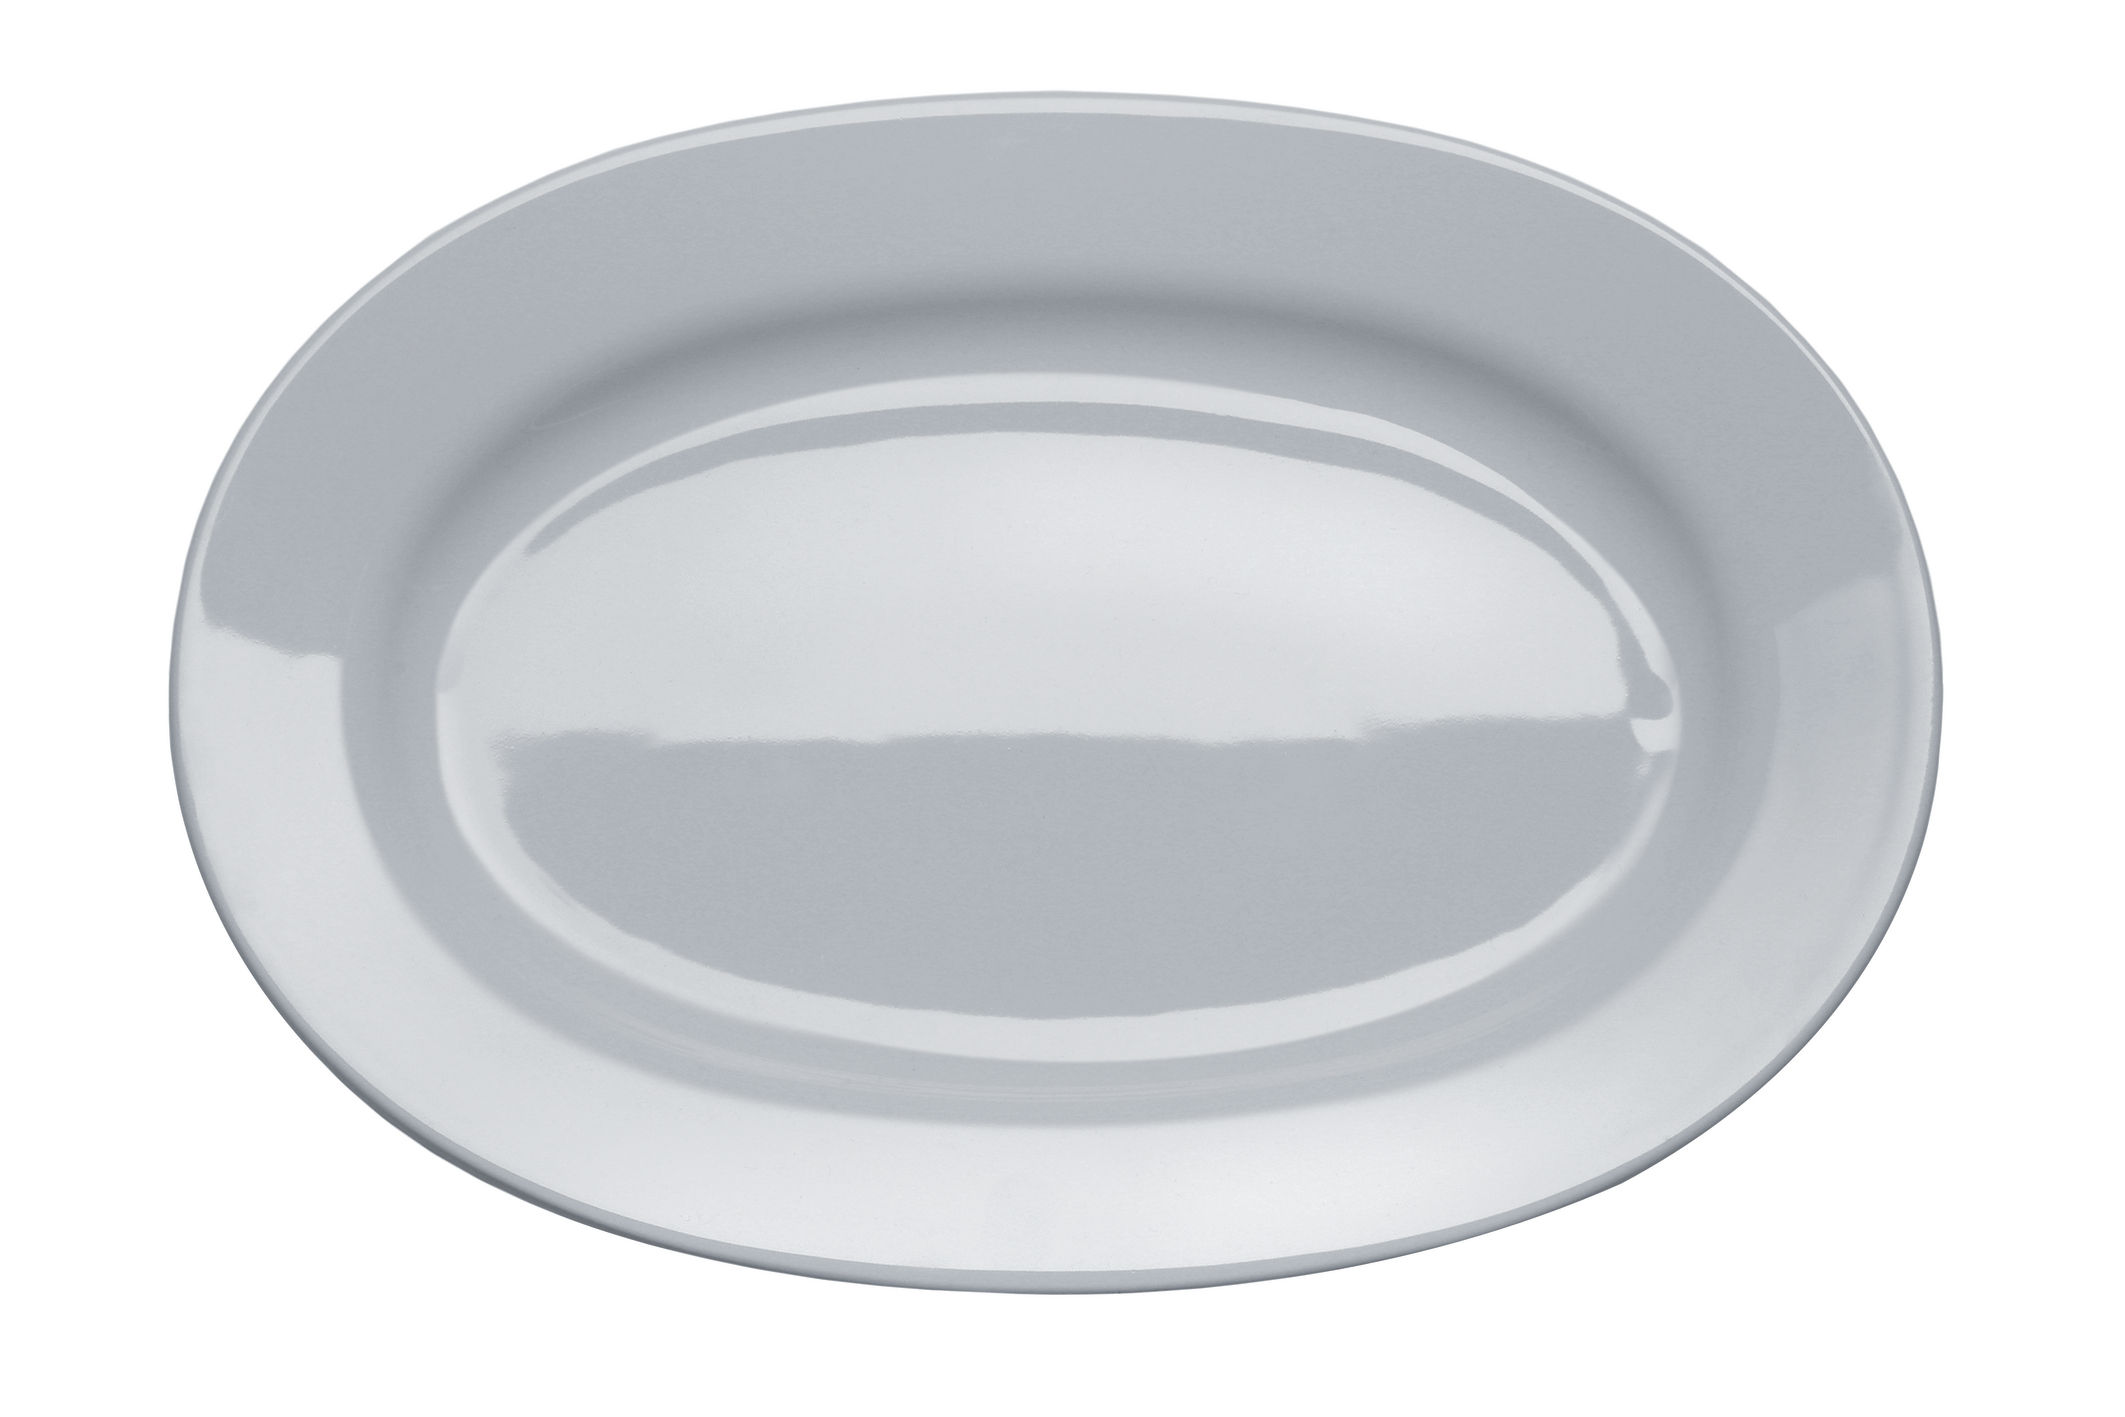 Tableware - Serving Plates - Platebowlcup Dish by A di Alessi - White - China